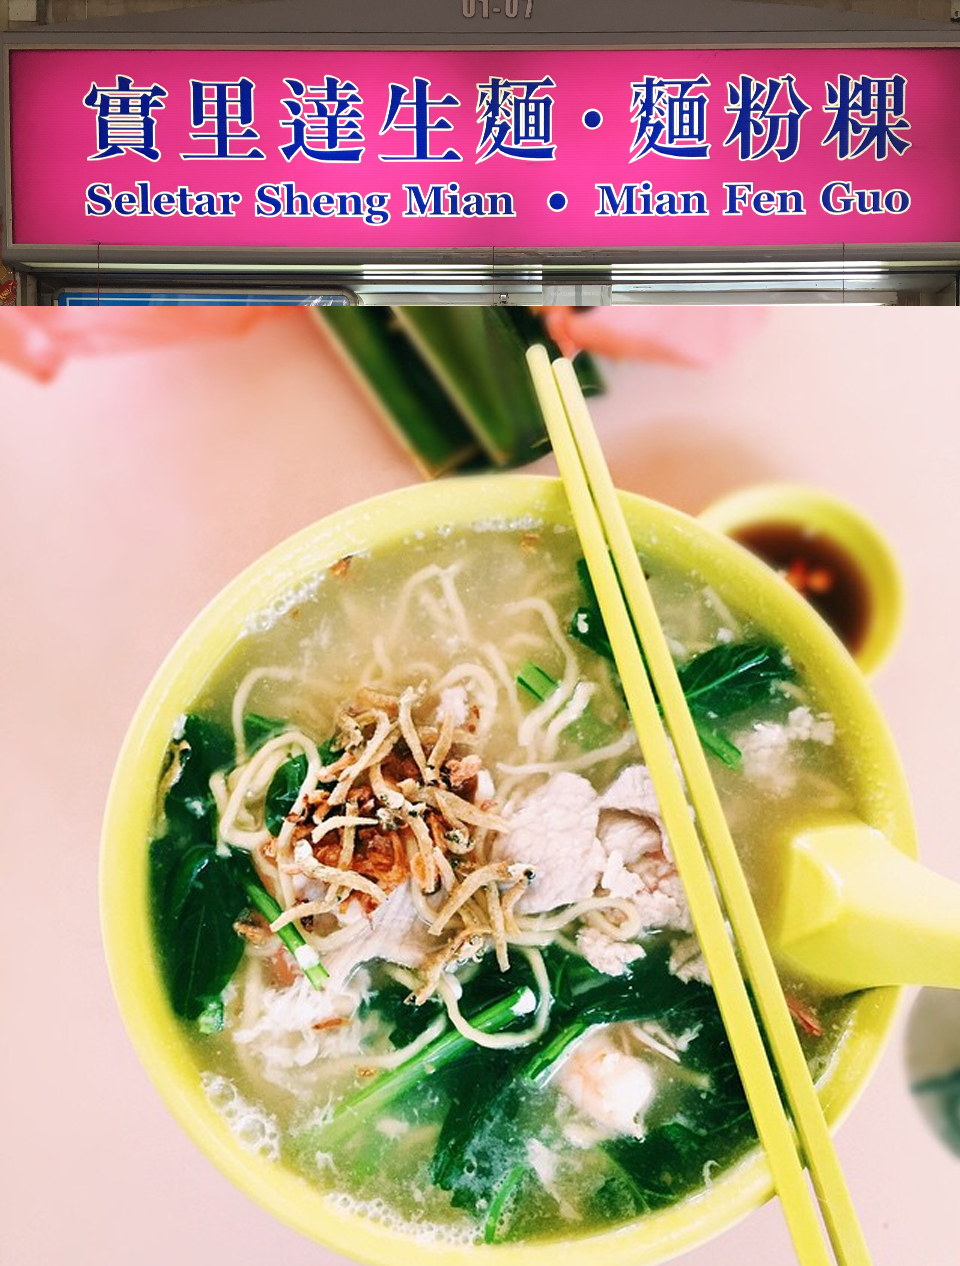 For Comforting Sheng Mian and Mian Fen Guo